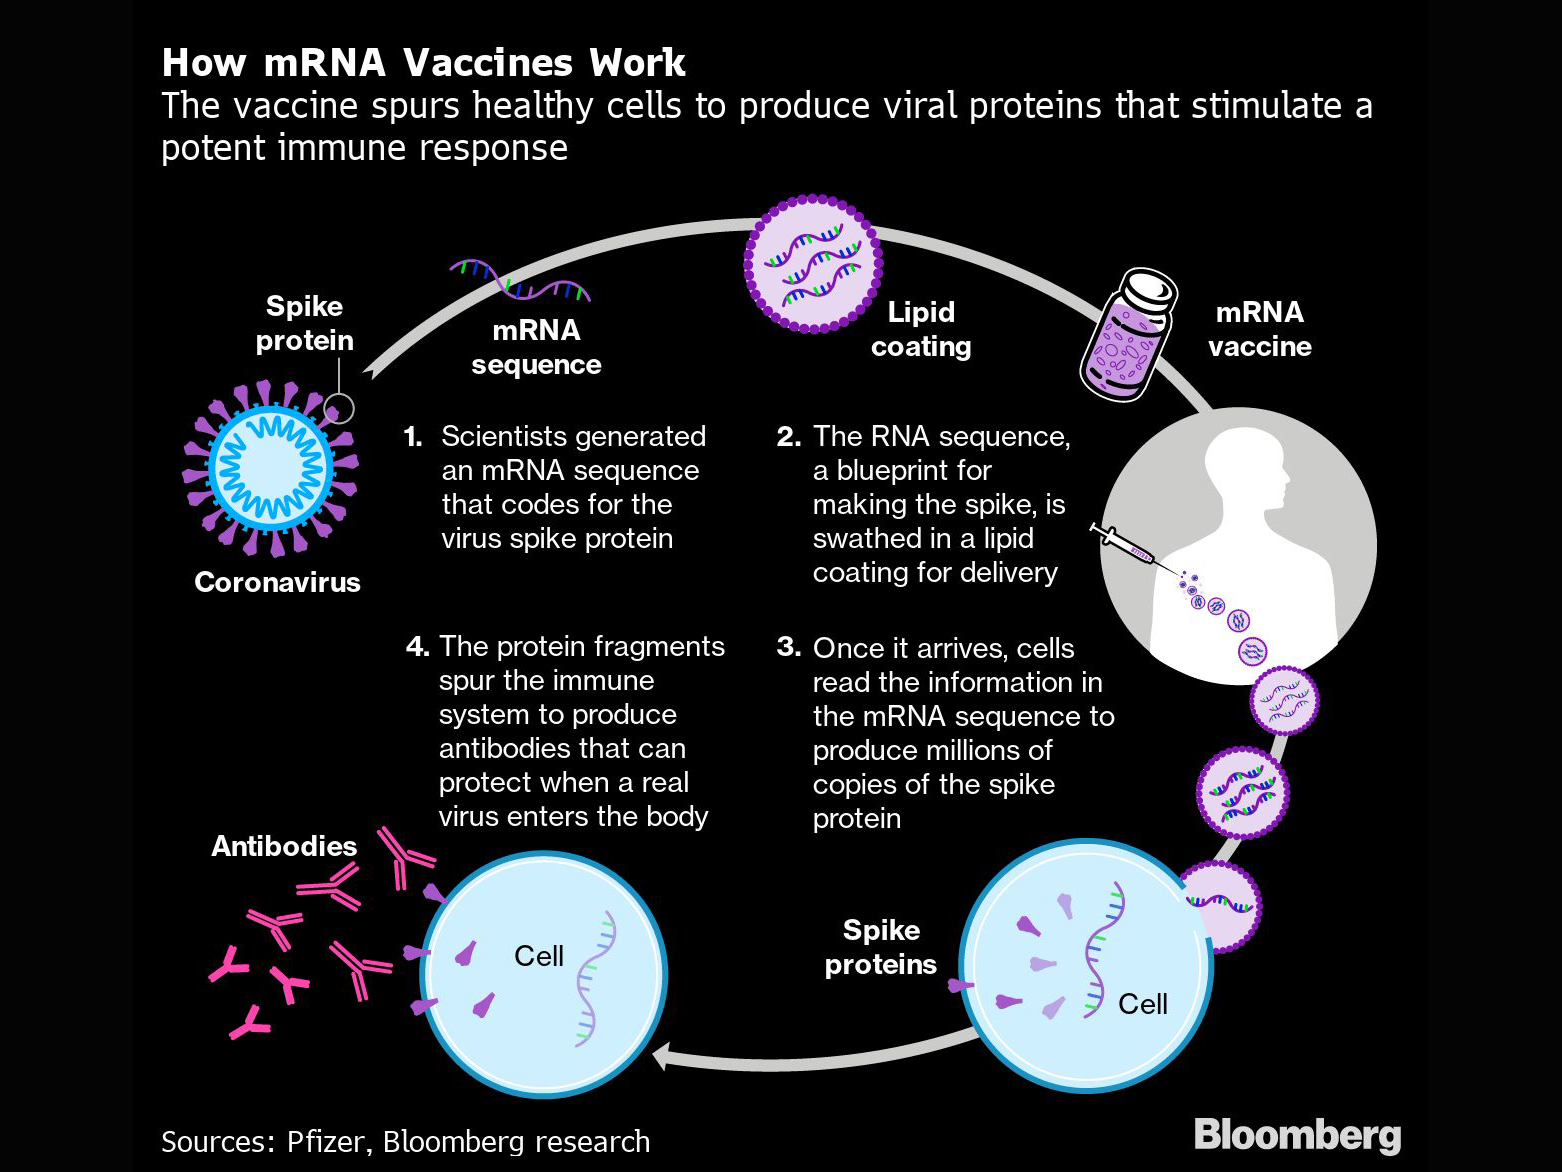 How mRNA Vaccines Work